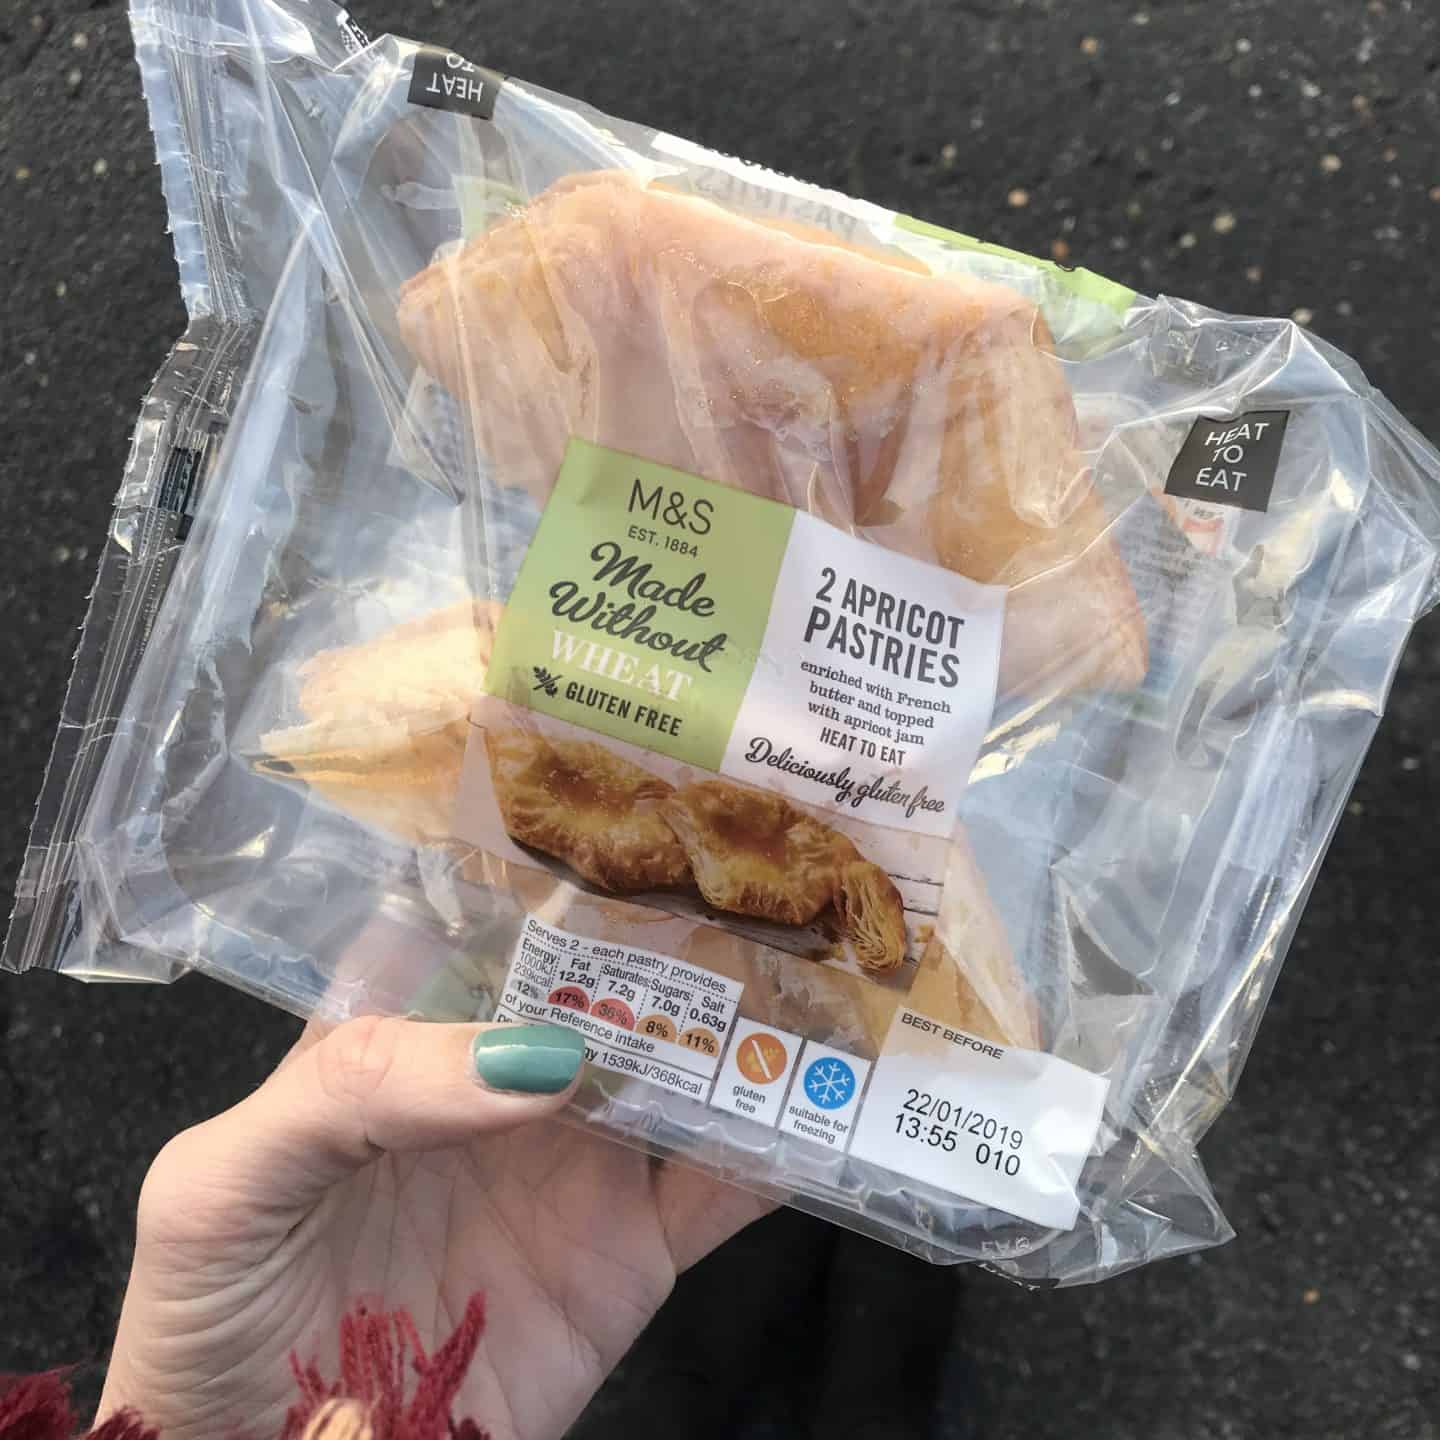 M&S gluten free apricot pastries